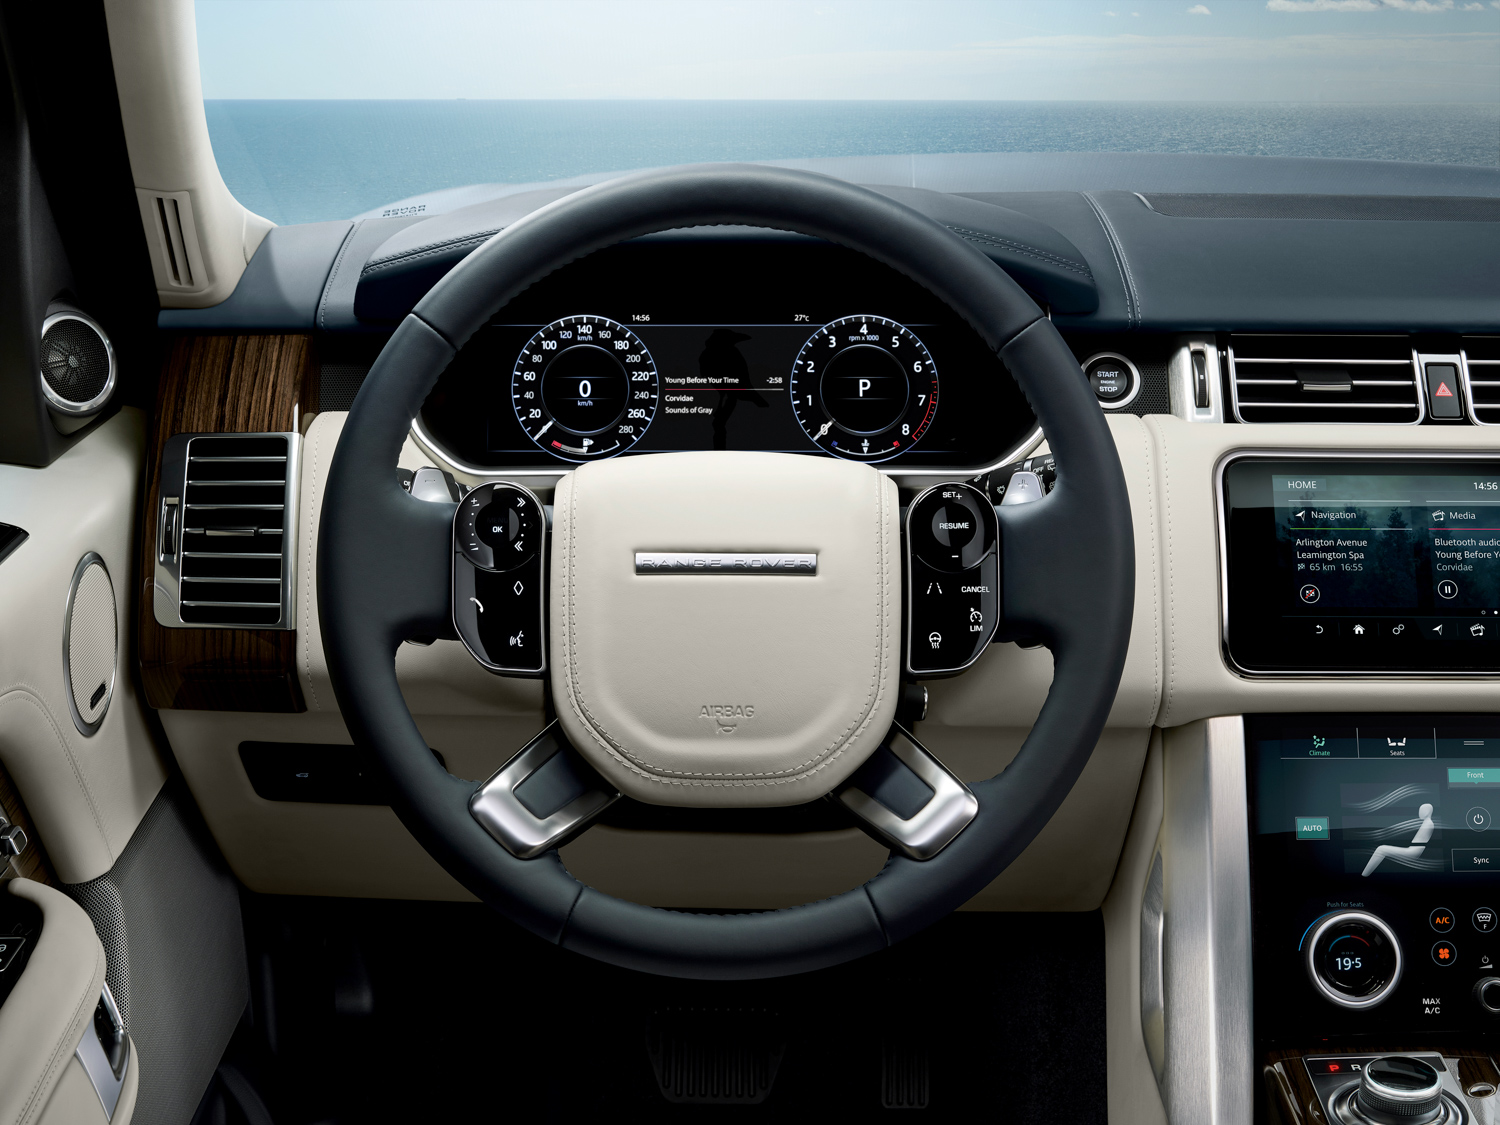 2020 Land Rover Range Rover wheel and gauges